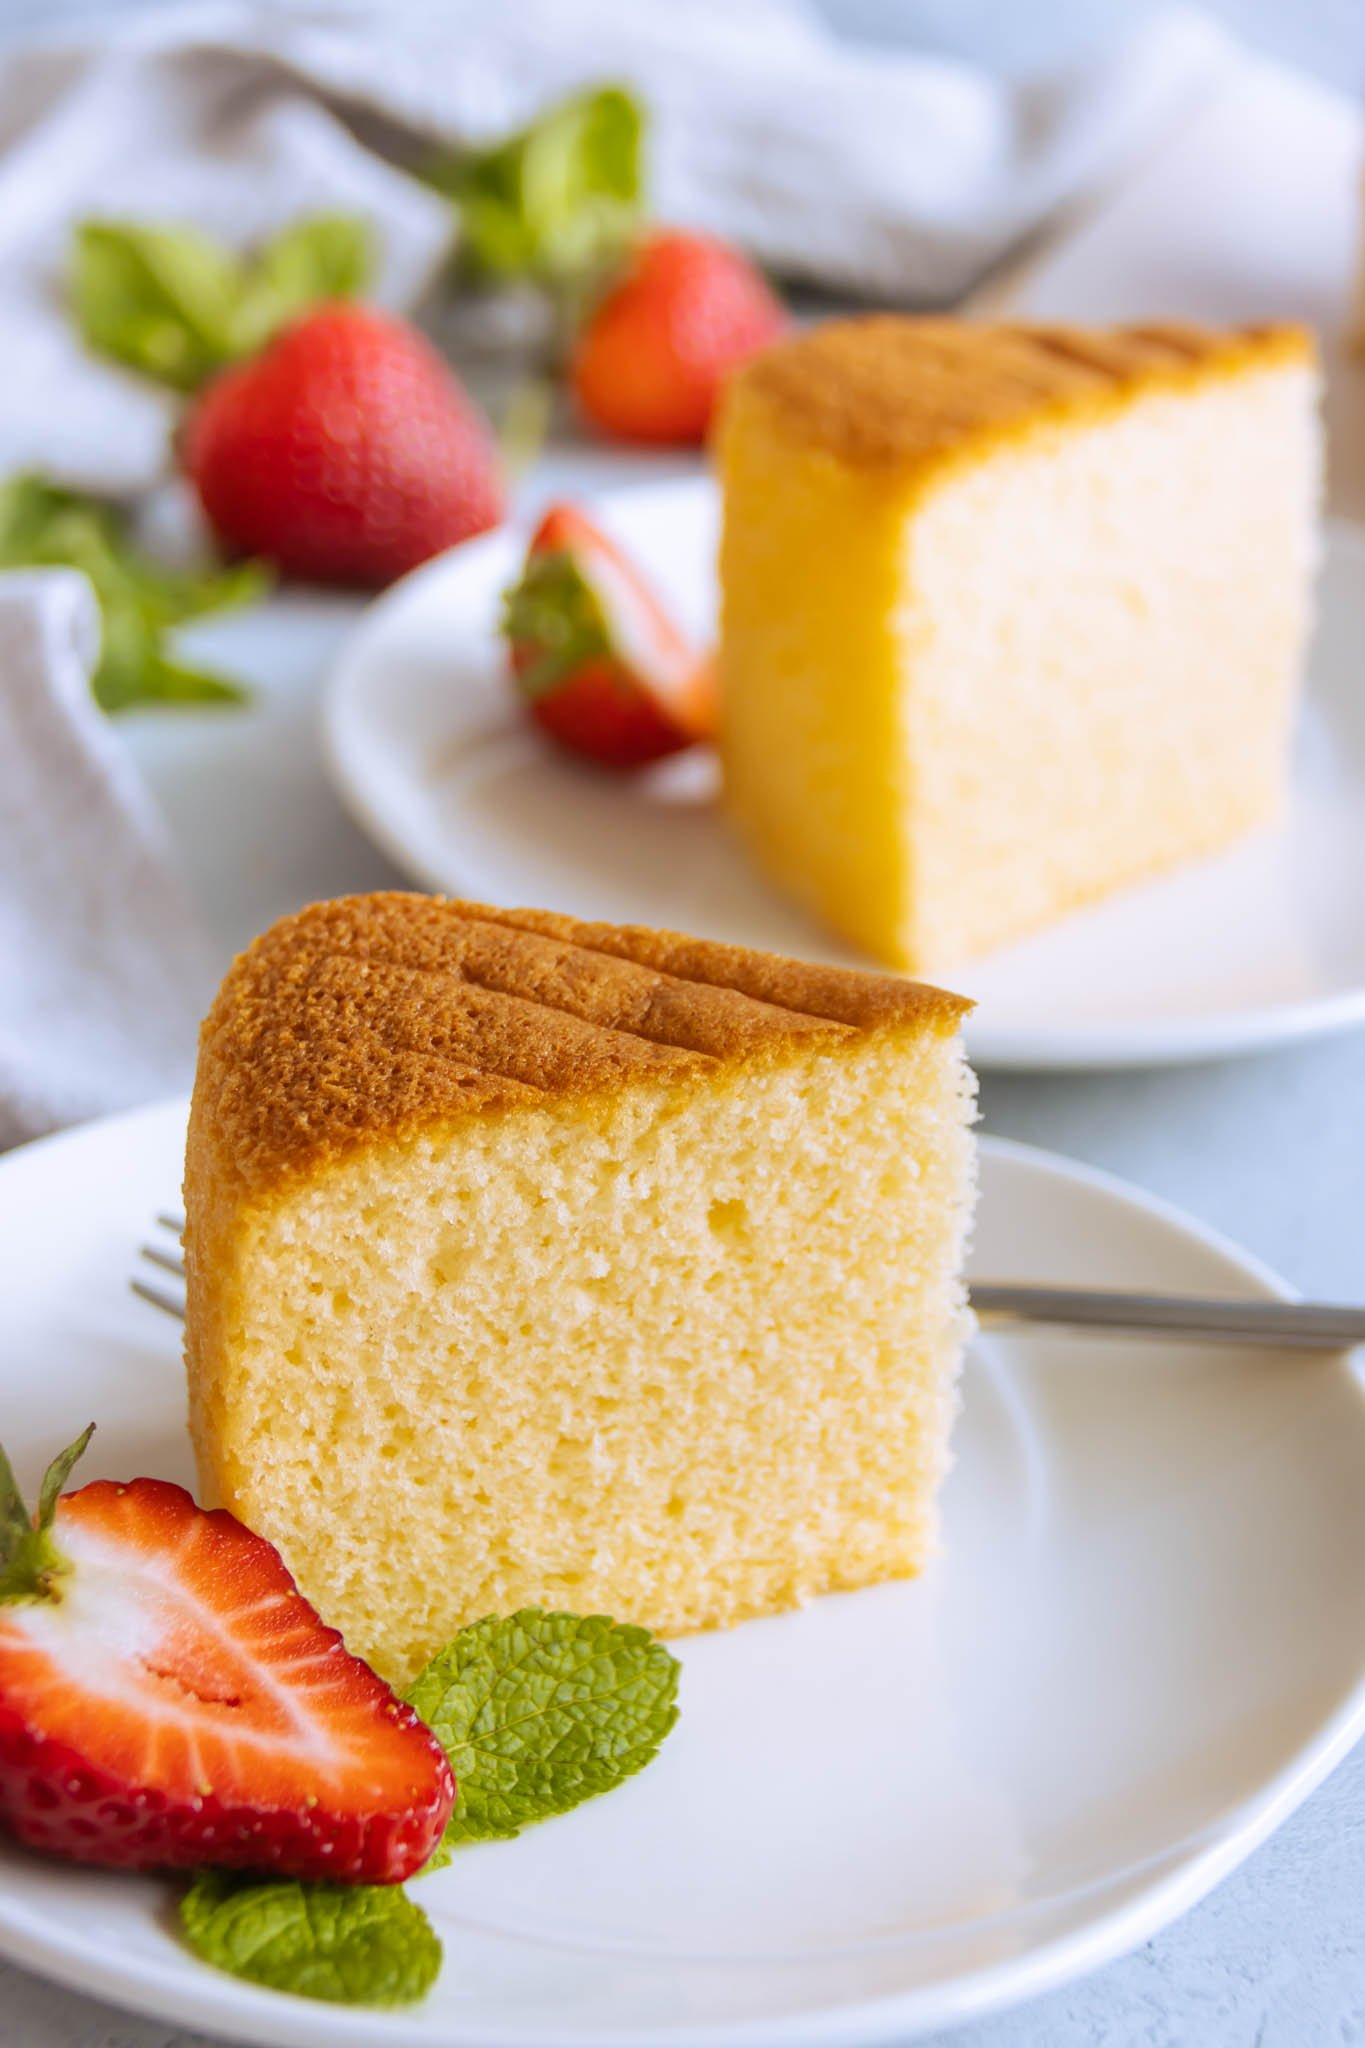 Vanilla genoise sponge cake slice served on a plate with fresh cut fruit